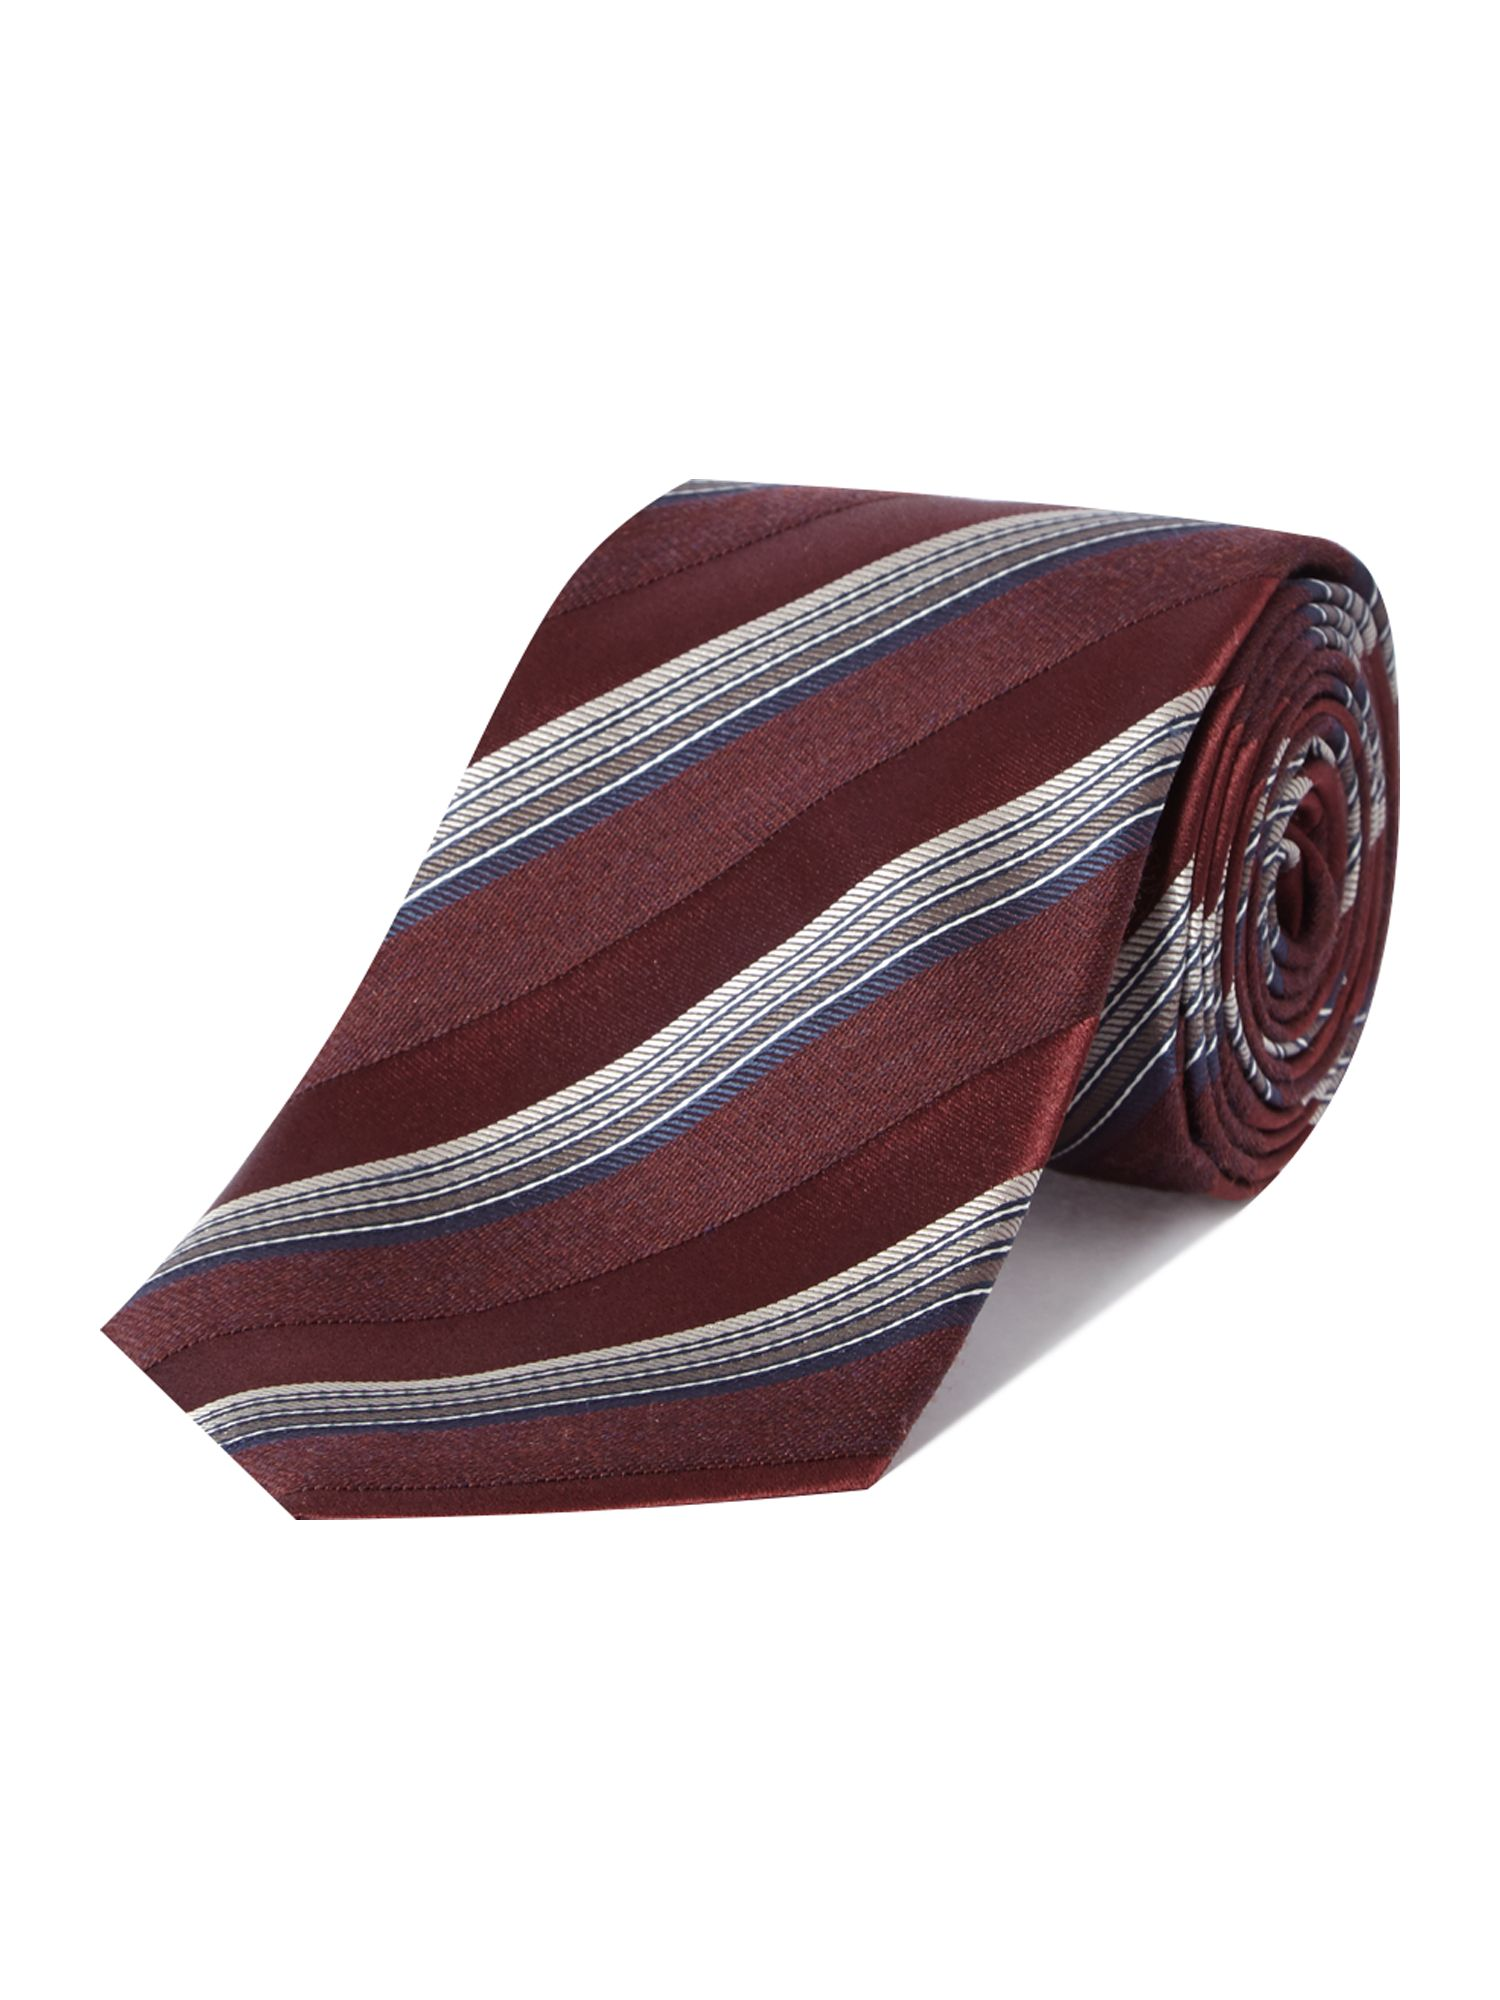 Piedmont multistripe textured silk and wool tie